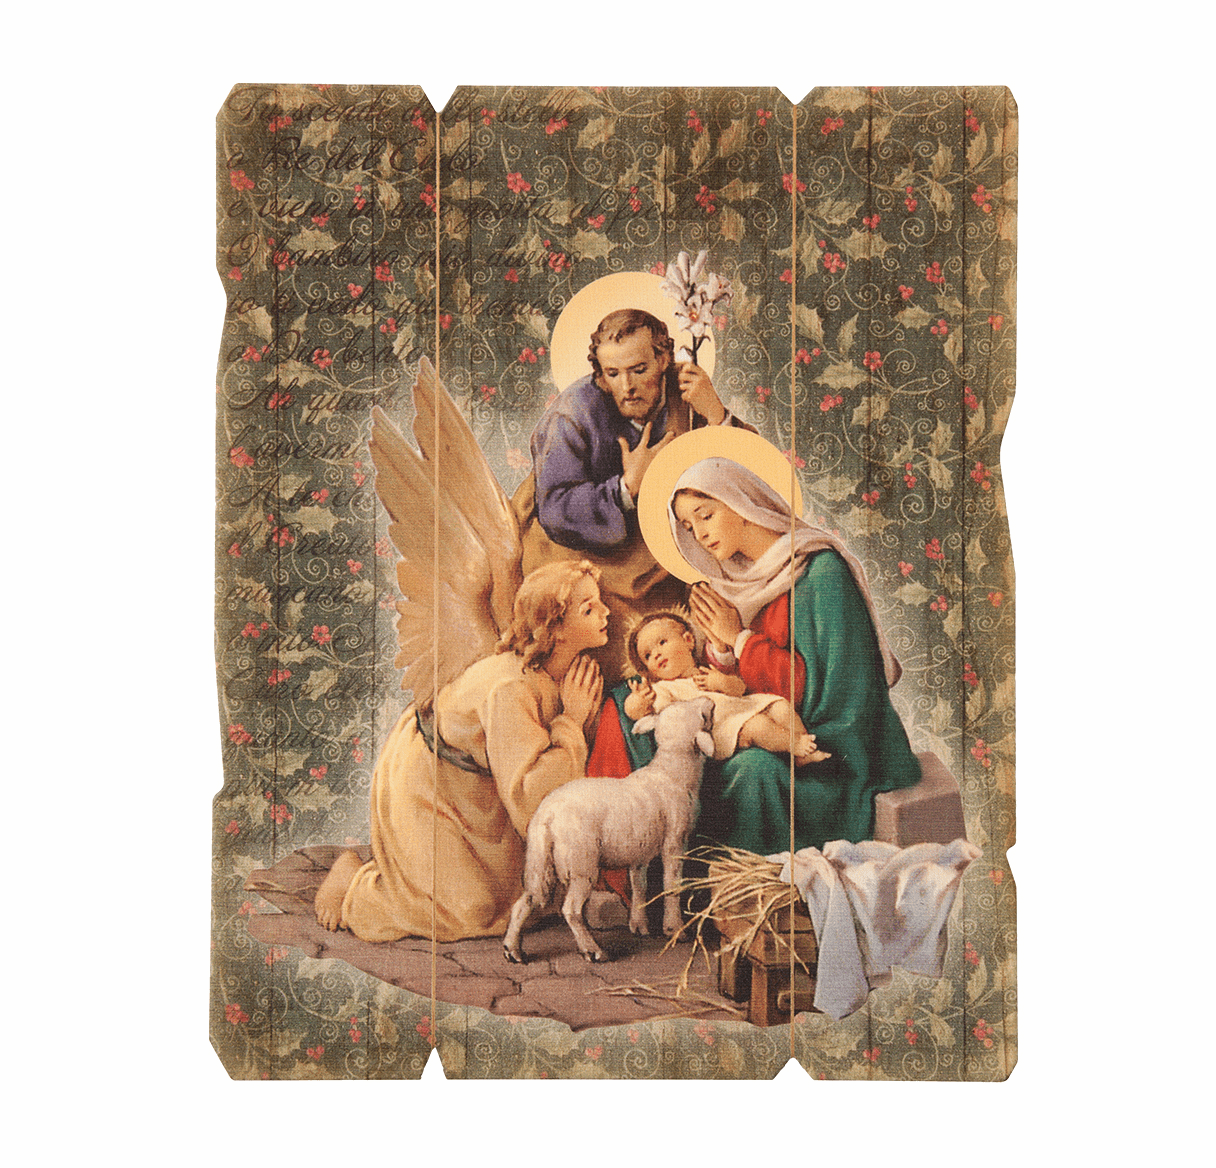 Hirten Holy Family Christmas Nativity Vintage Wall Plaque